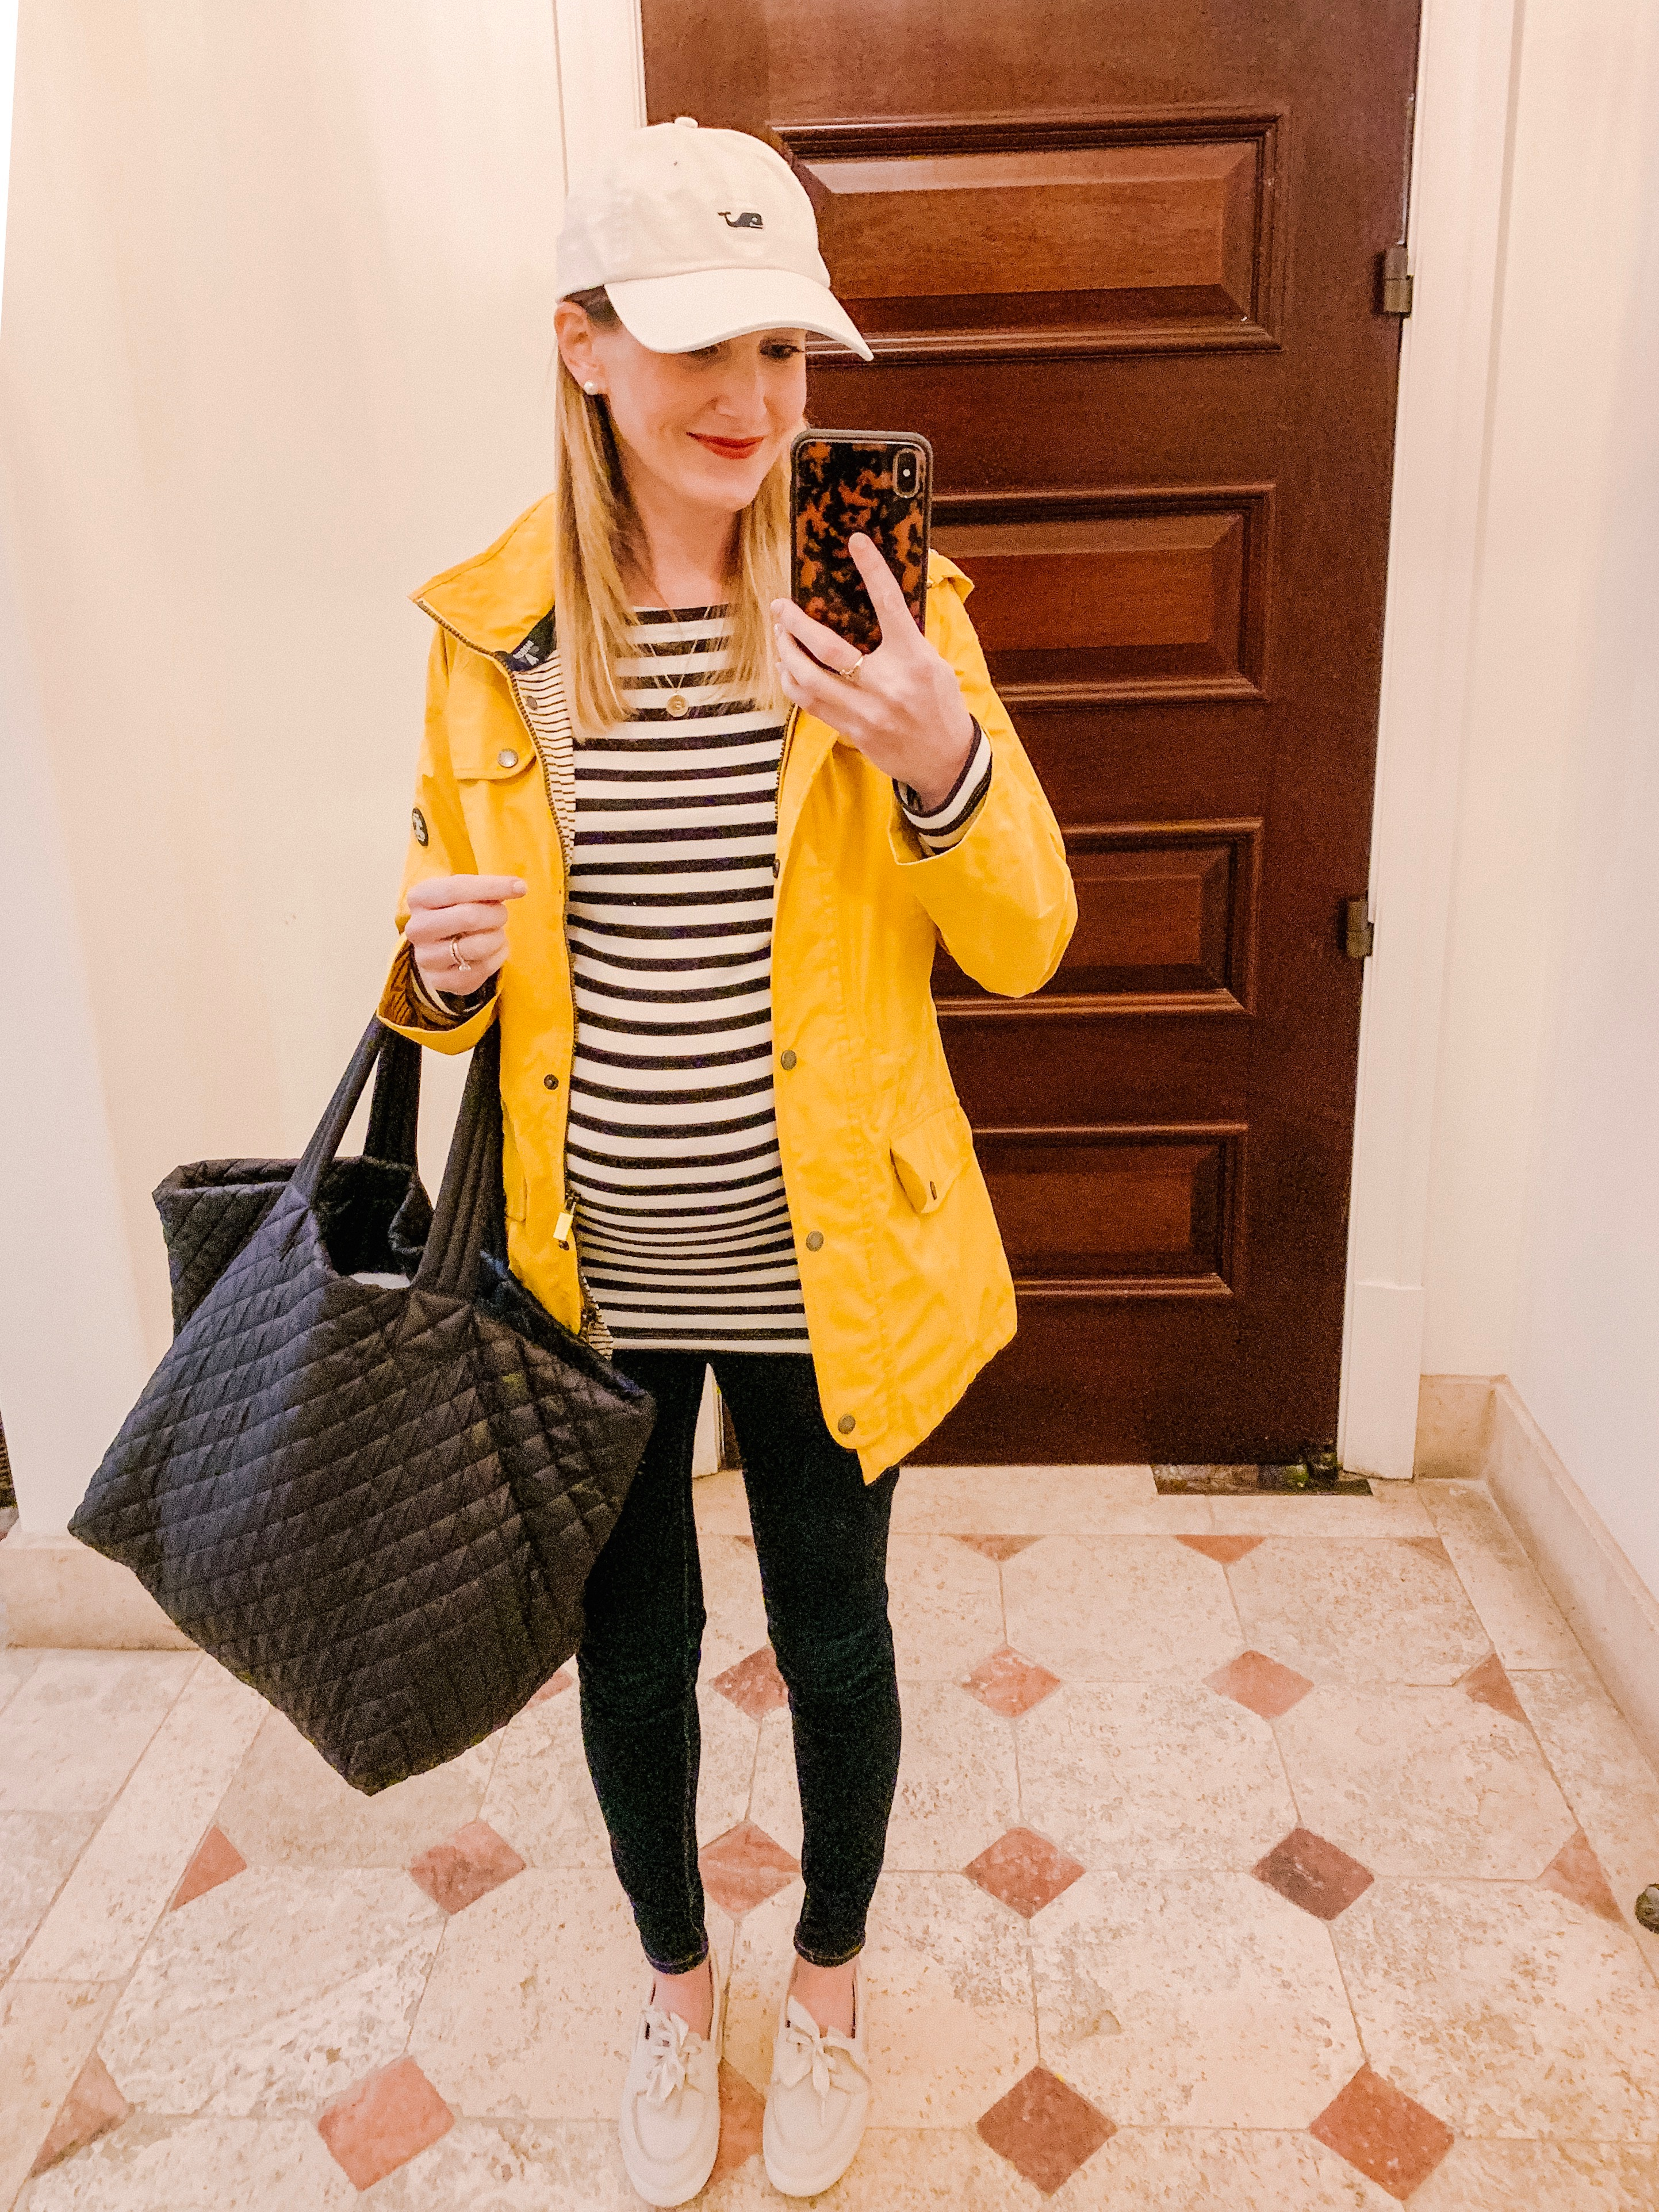 Outfit details: Coast Waterproof Hooded Jacket JOULES | striped blouse and leggings.